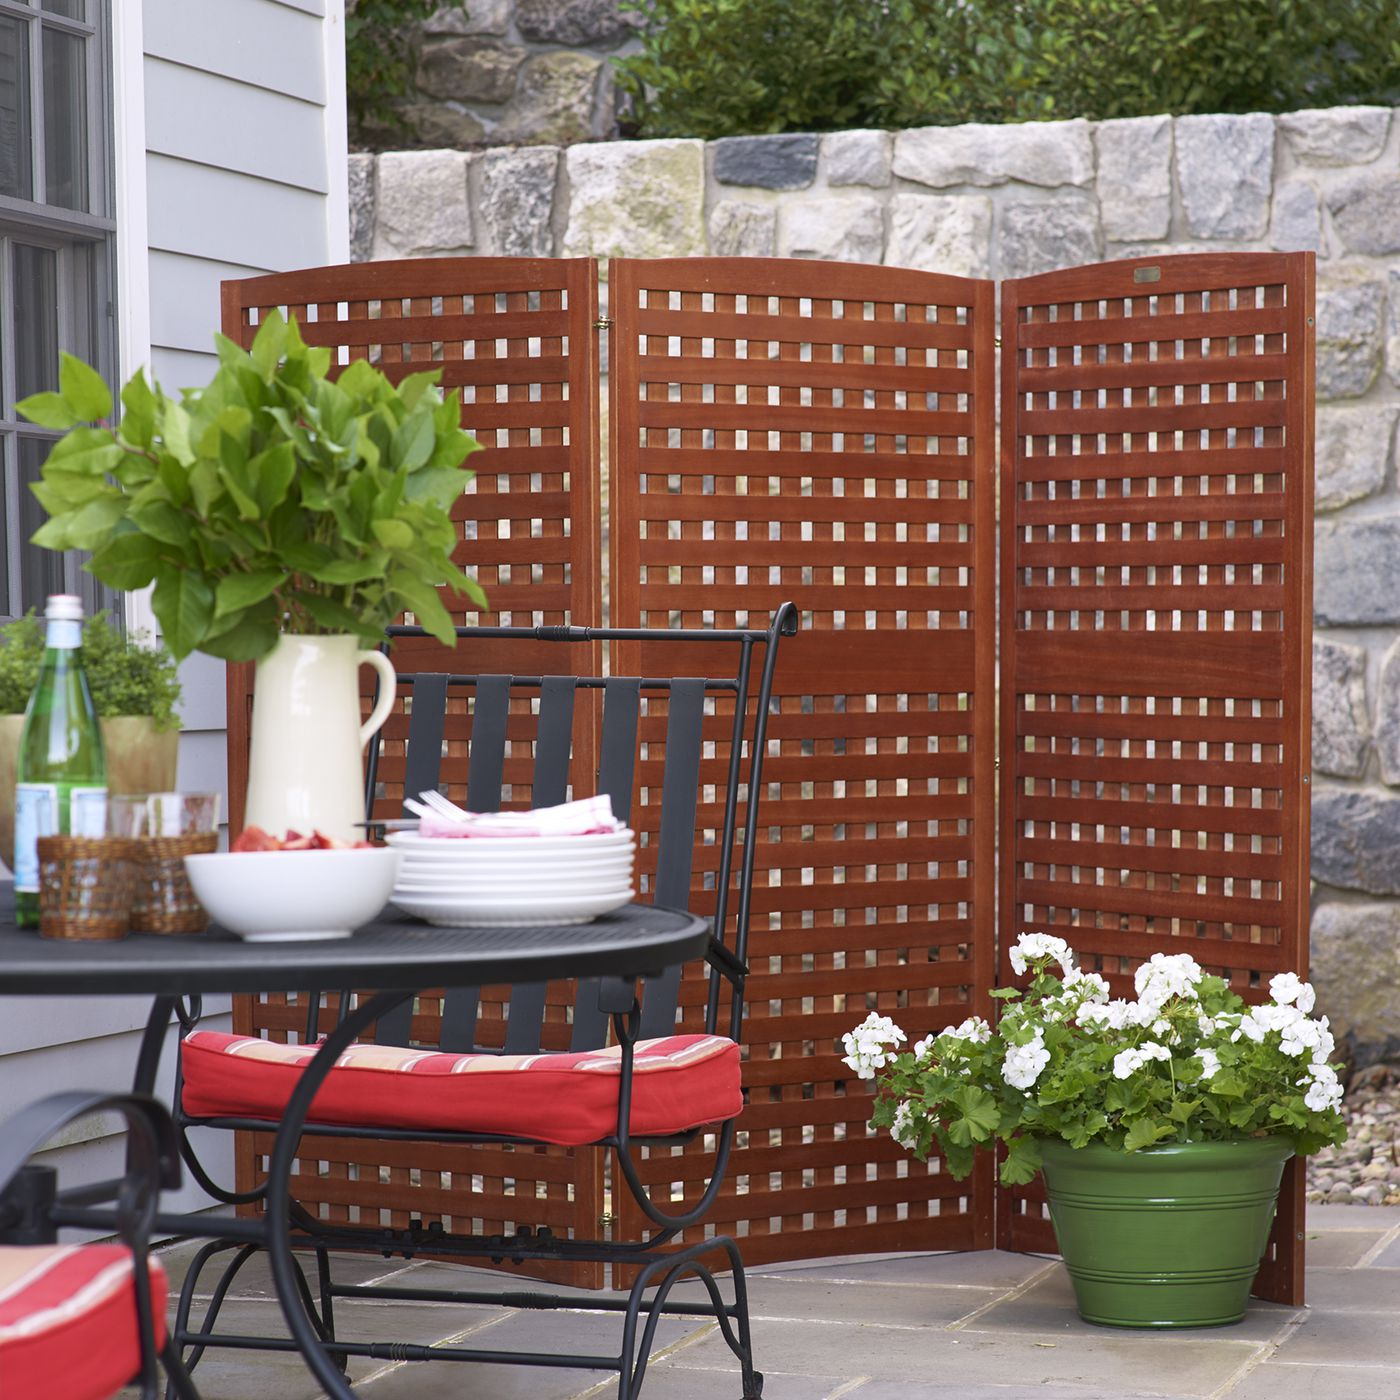 How To Build An Outdoor Privacy Screen This Old House